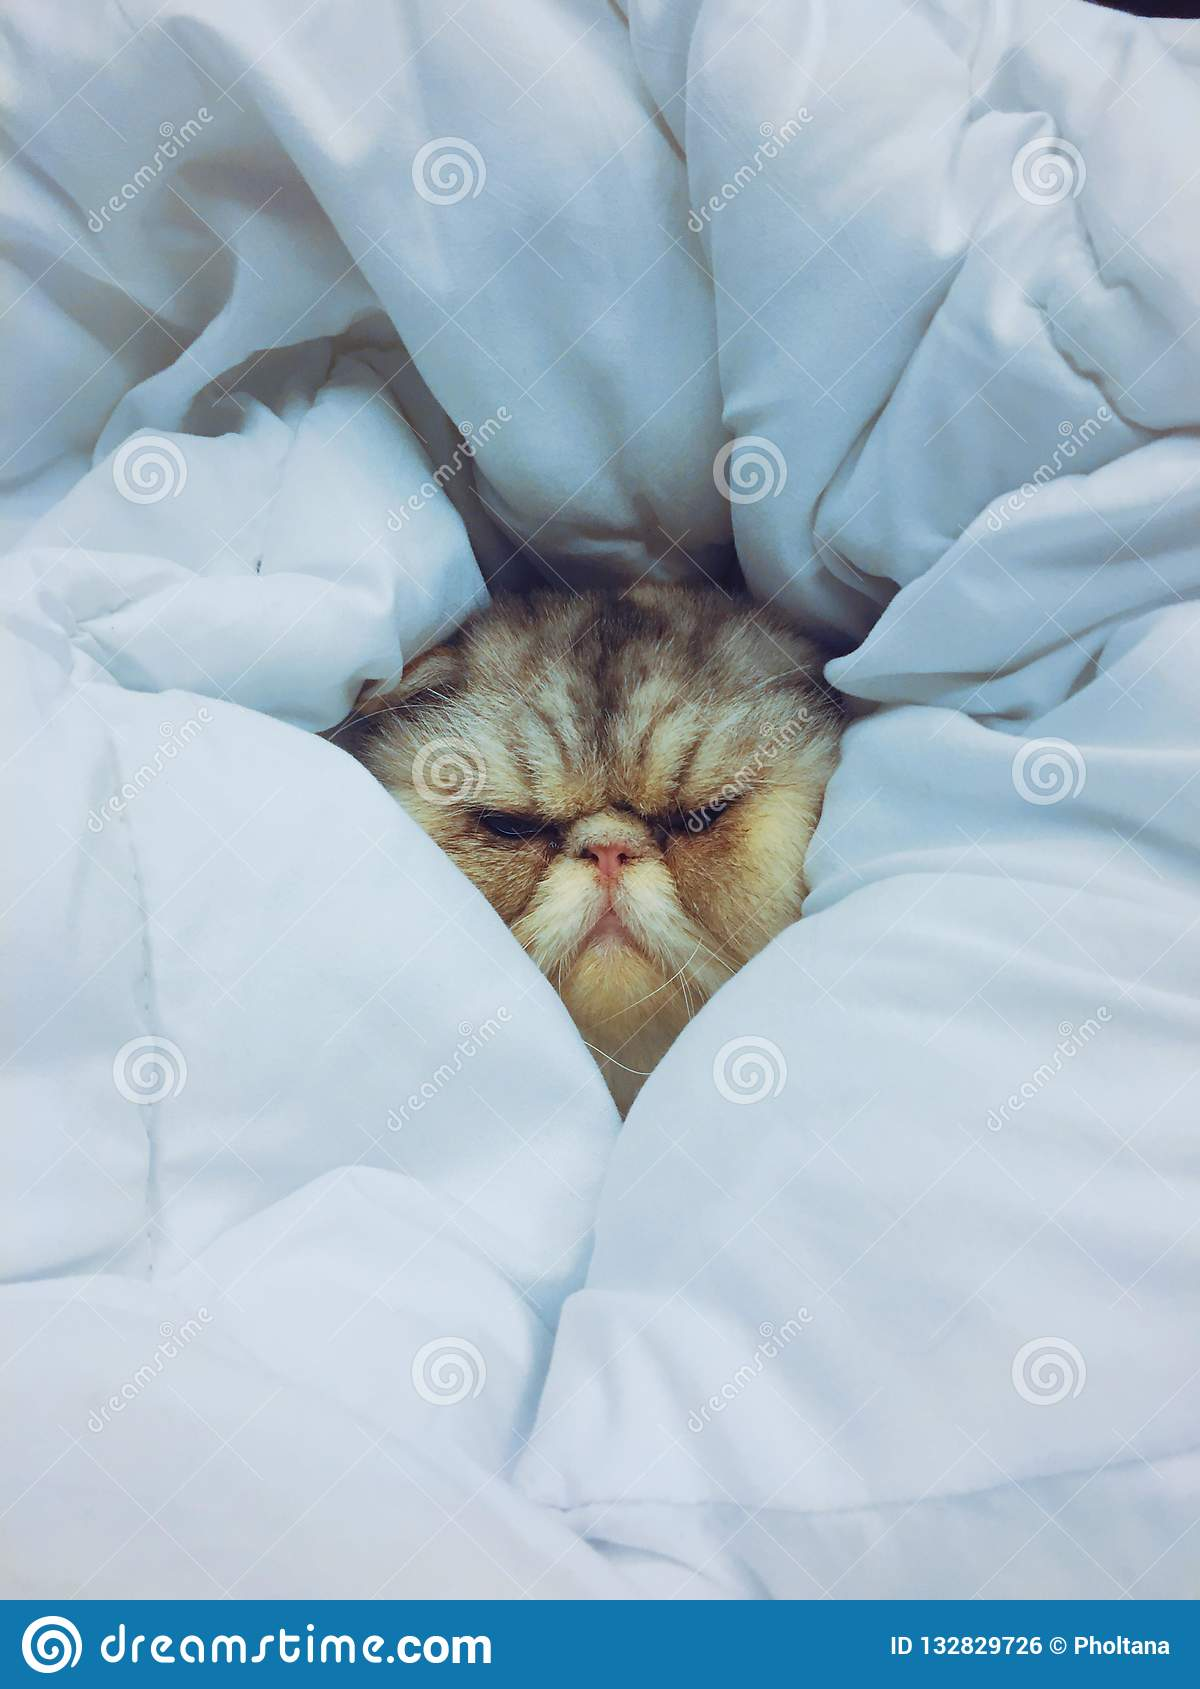 An exotic cat sleeping in a blanket. Its soft and wrapped.